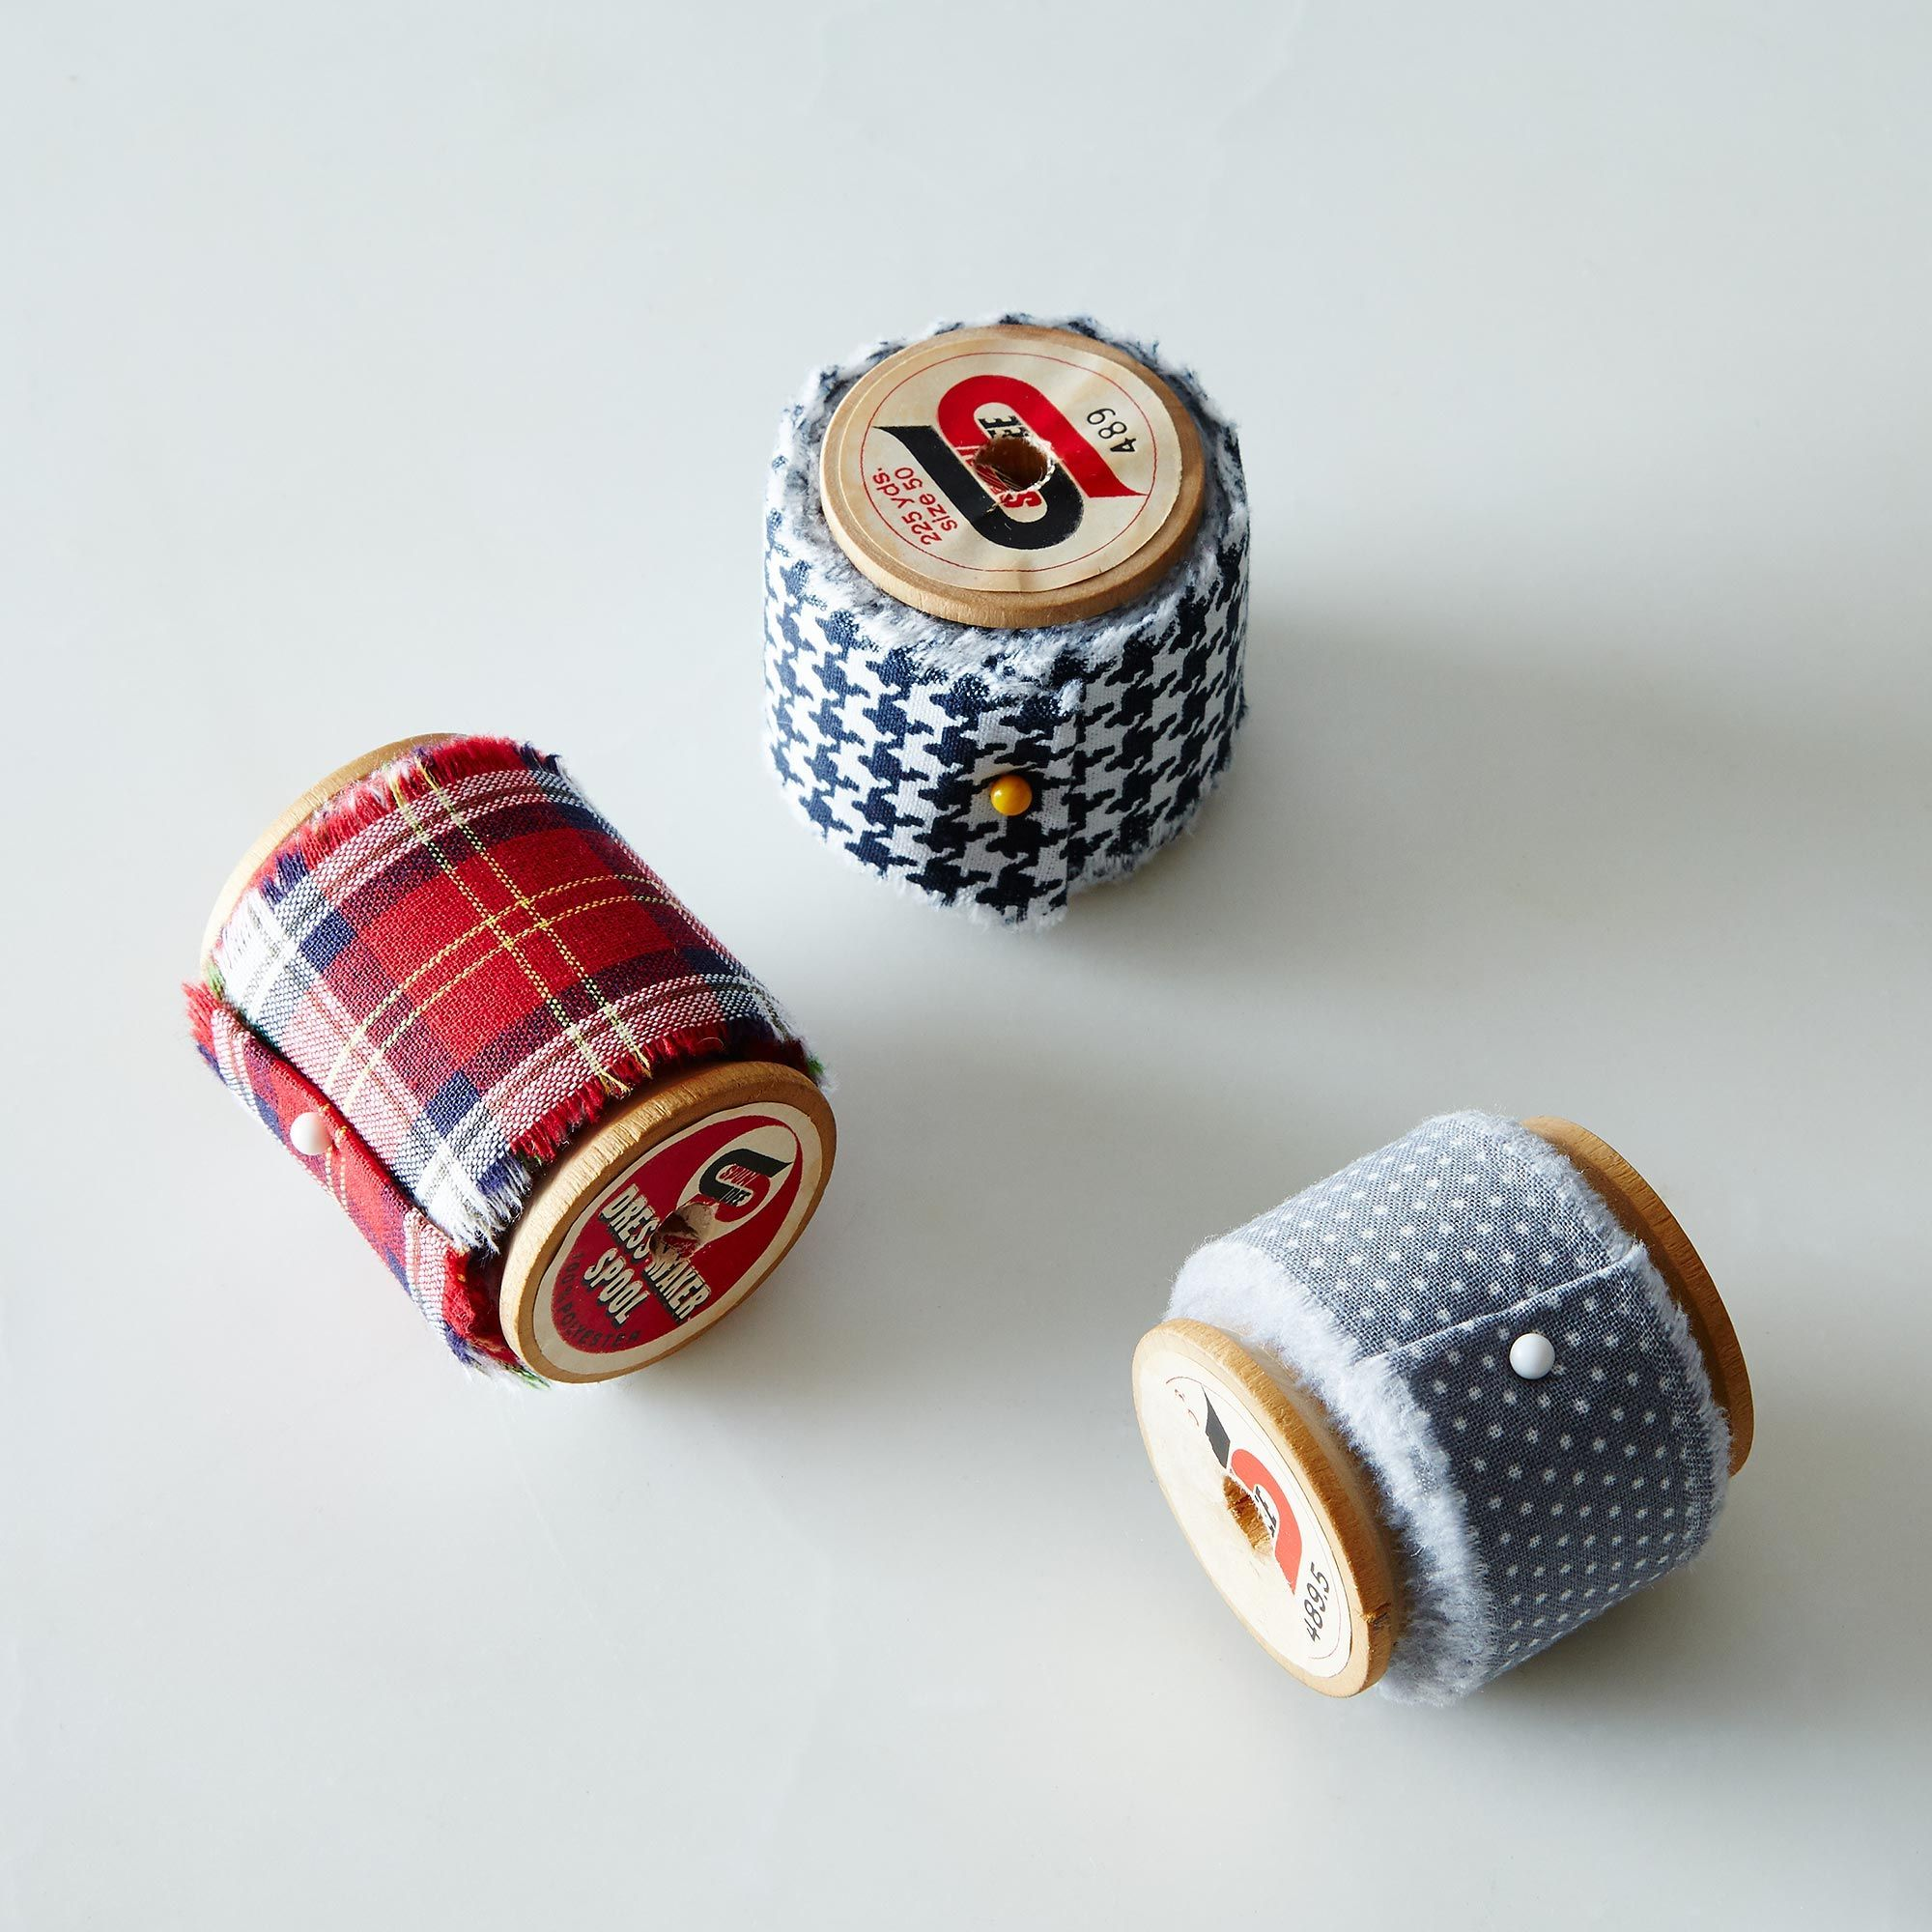 16c89a83 adf0 48e6 ad51 1186f8e89a0c  2014 1119 dot and army fabric ribbon vintage spools 003